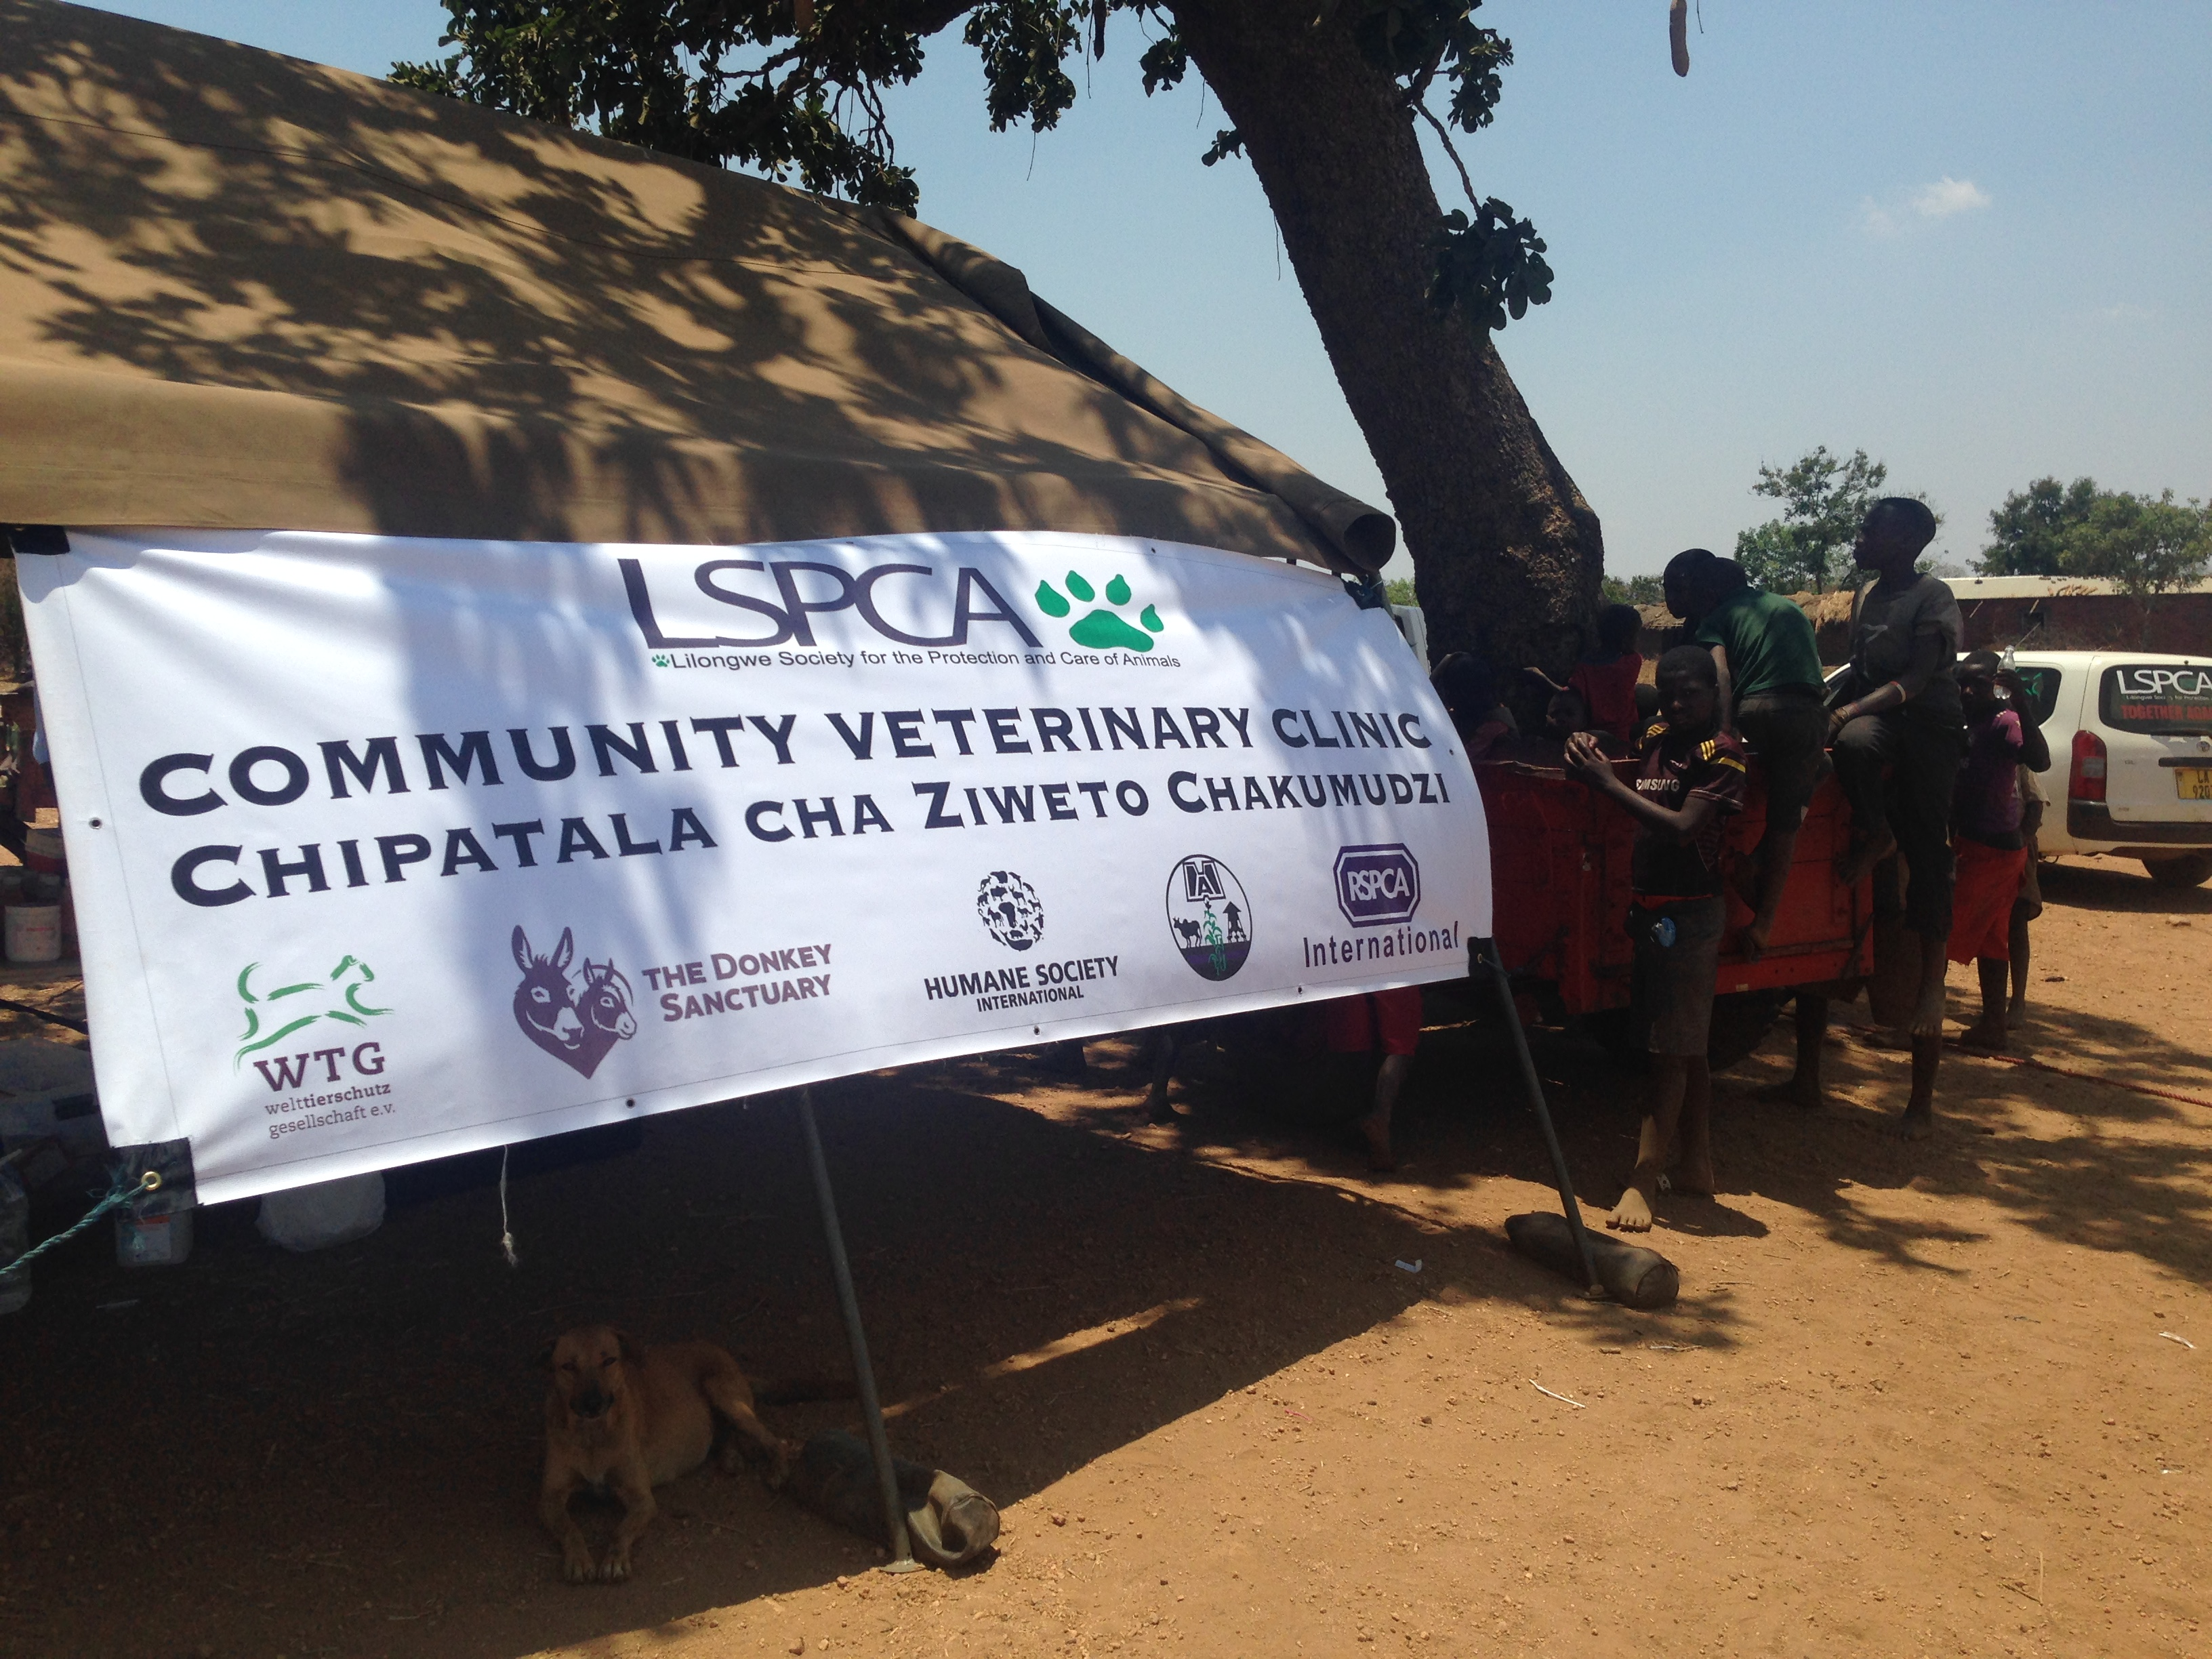 LSPCA and partners offer weekly mobile community veterinary clinics to provide vital veterinary care to farm animals and pets in rural areas